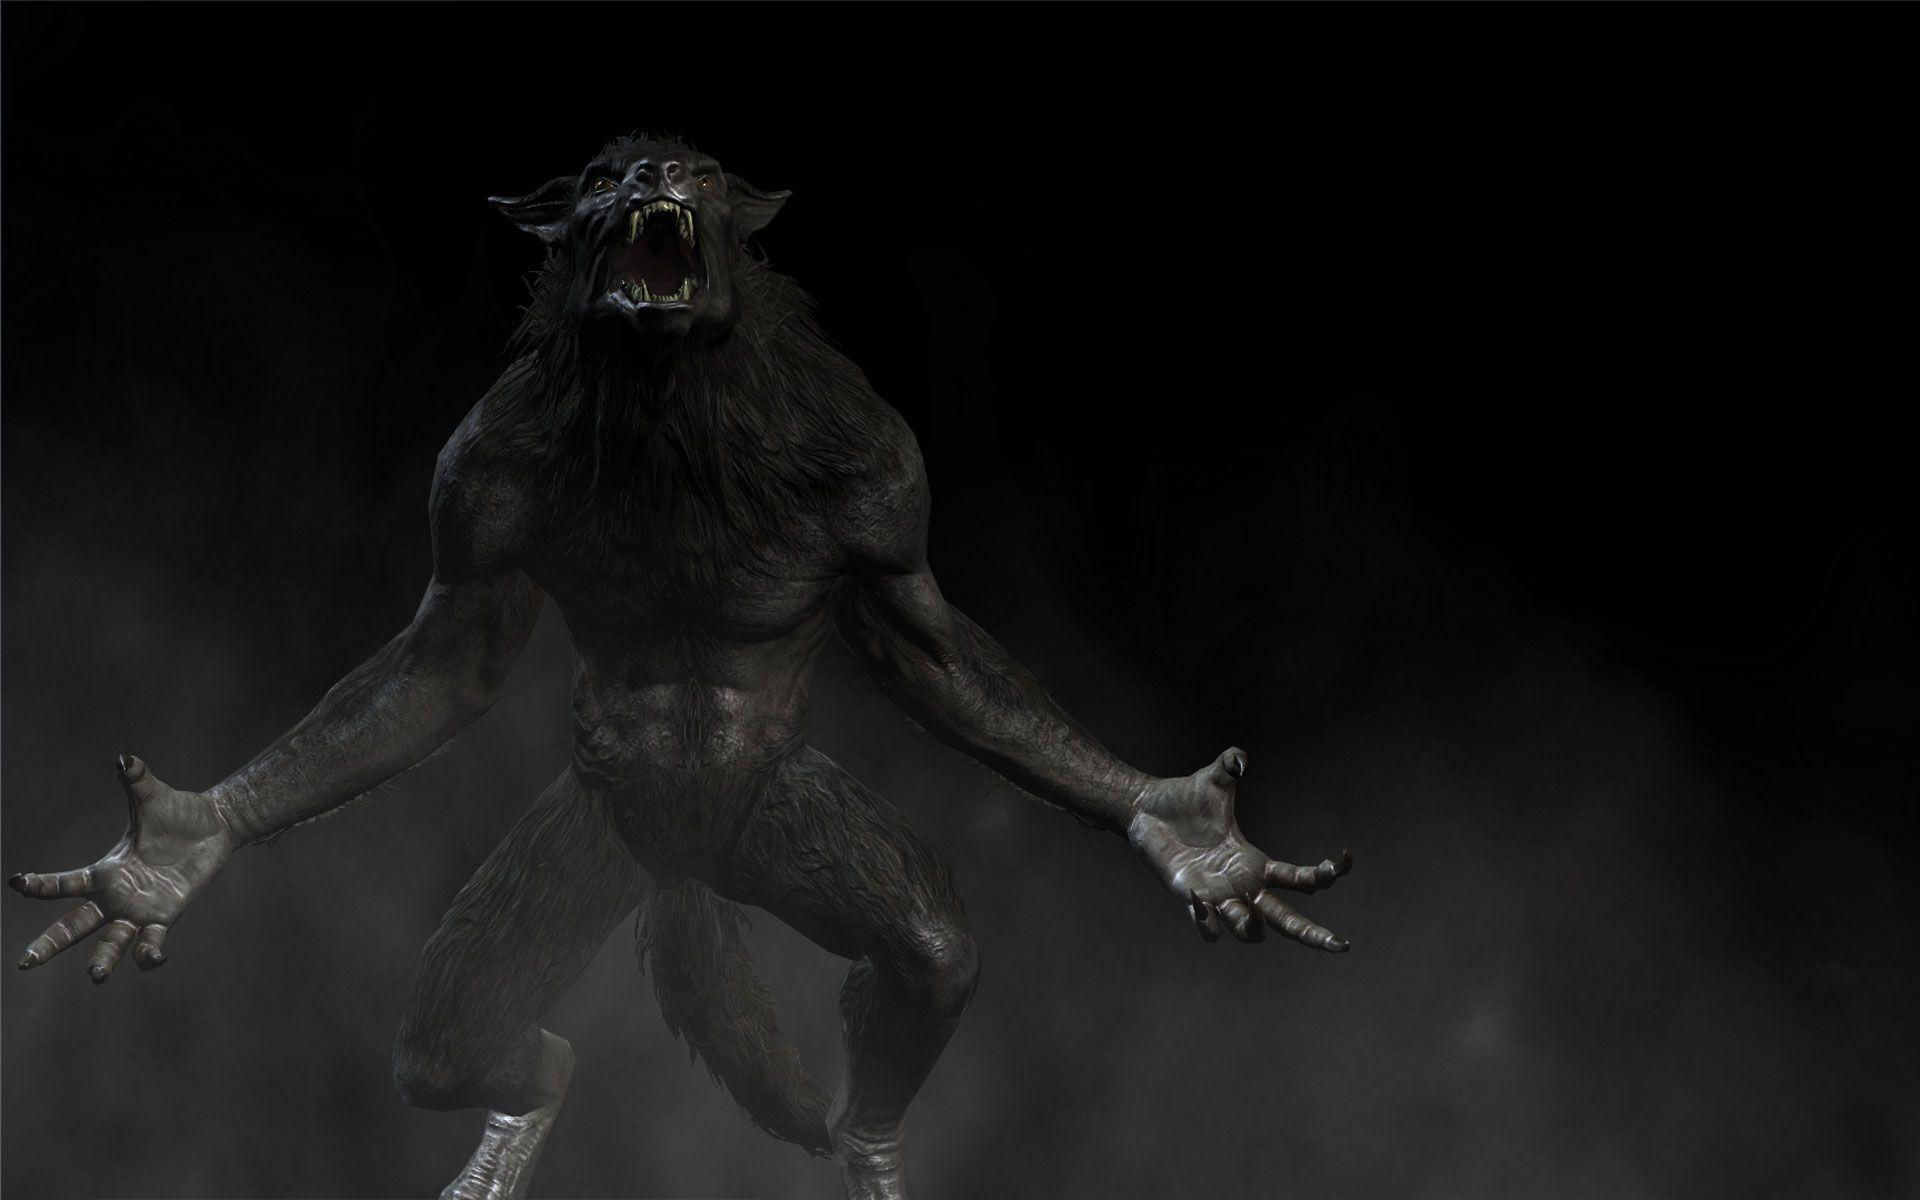 Skyrim werewolf wallpaper hd - photo#1